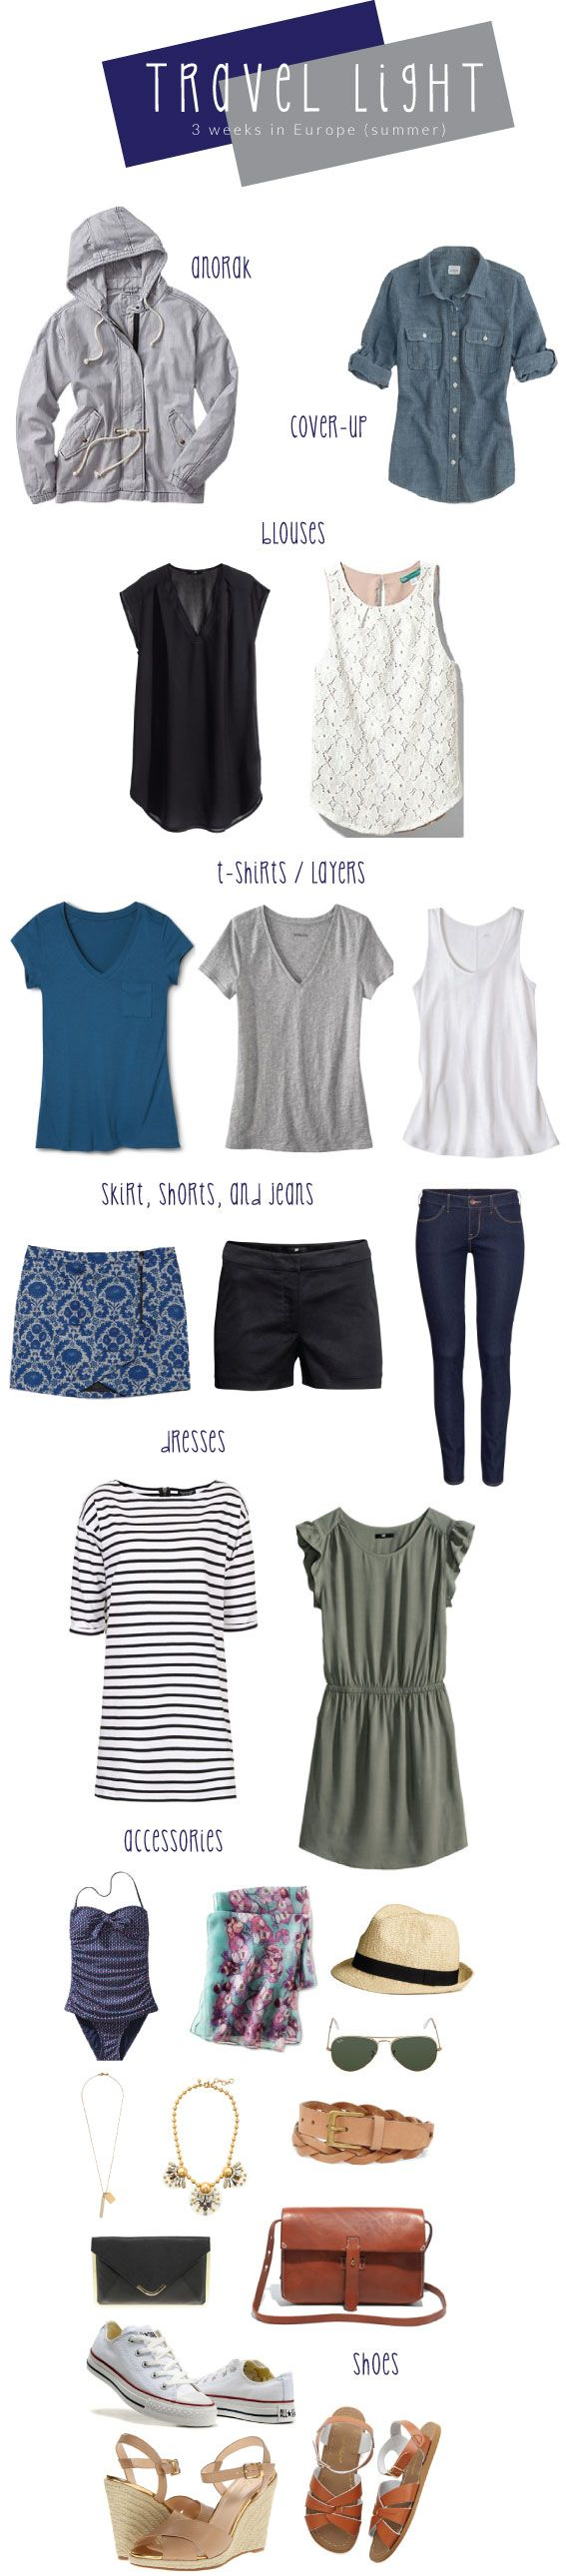 Packing Light:  Summer--great example packing list! Perfect for Vegas trips since I always get so carried away :)